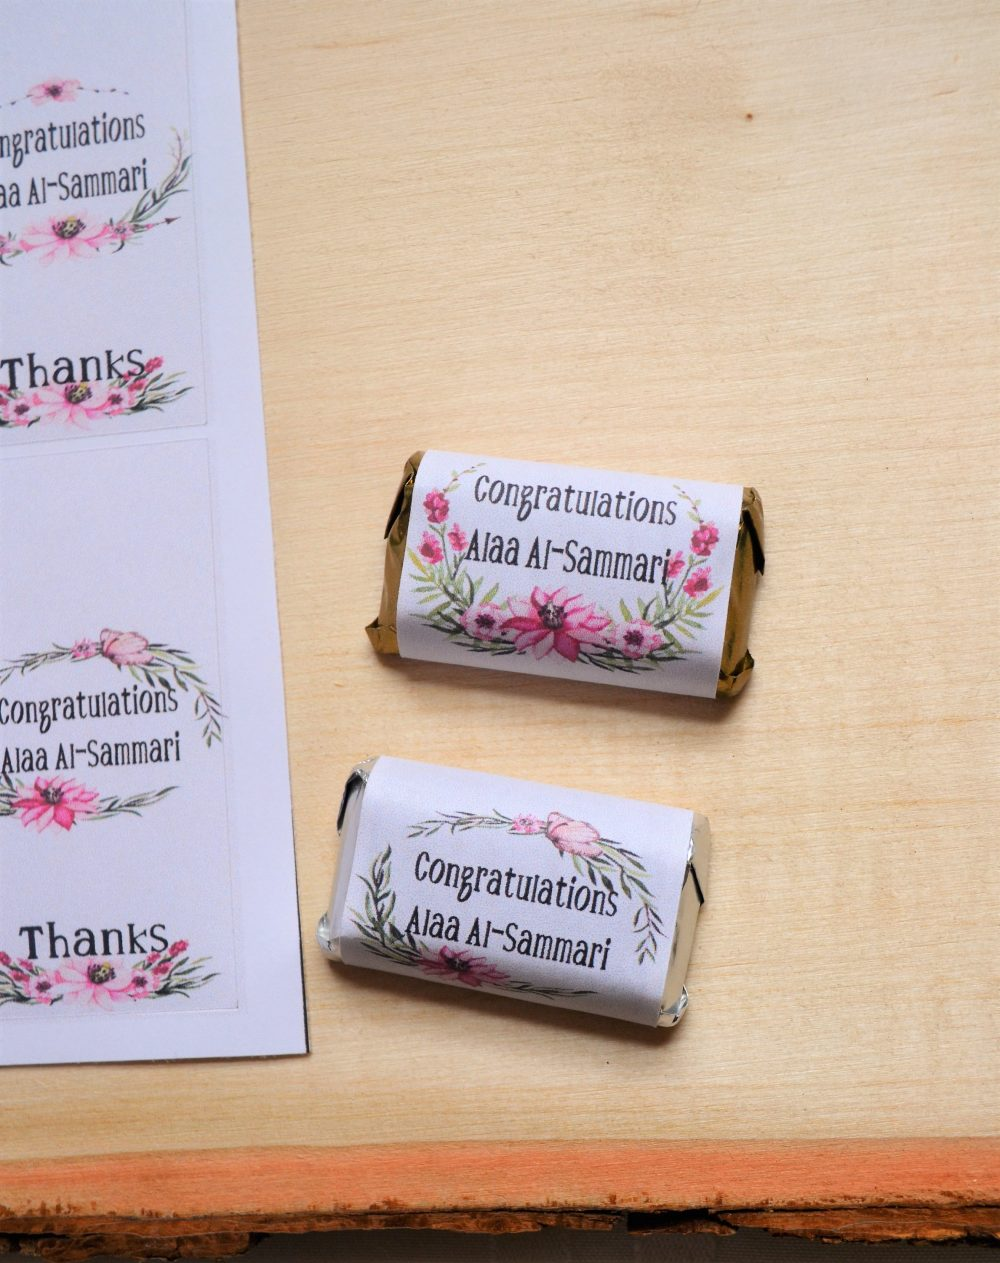 Nikah Personalized Gifts - Treats, Set Of 24 Congratulations Mini Candy Wrappers, Customized Wedding Chocolate Wrappers, Miniature Hershey's